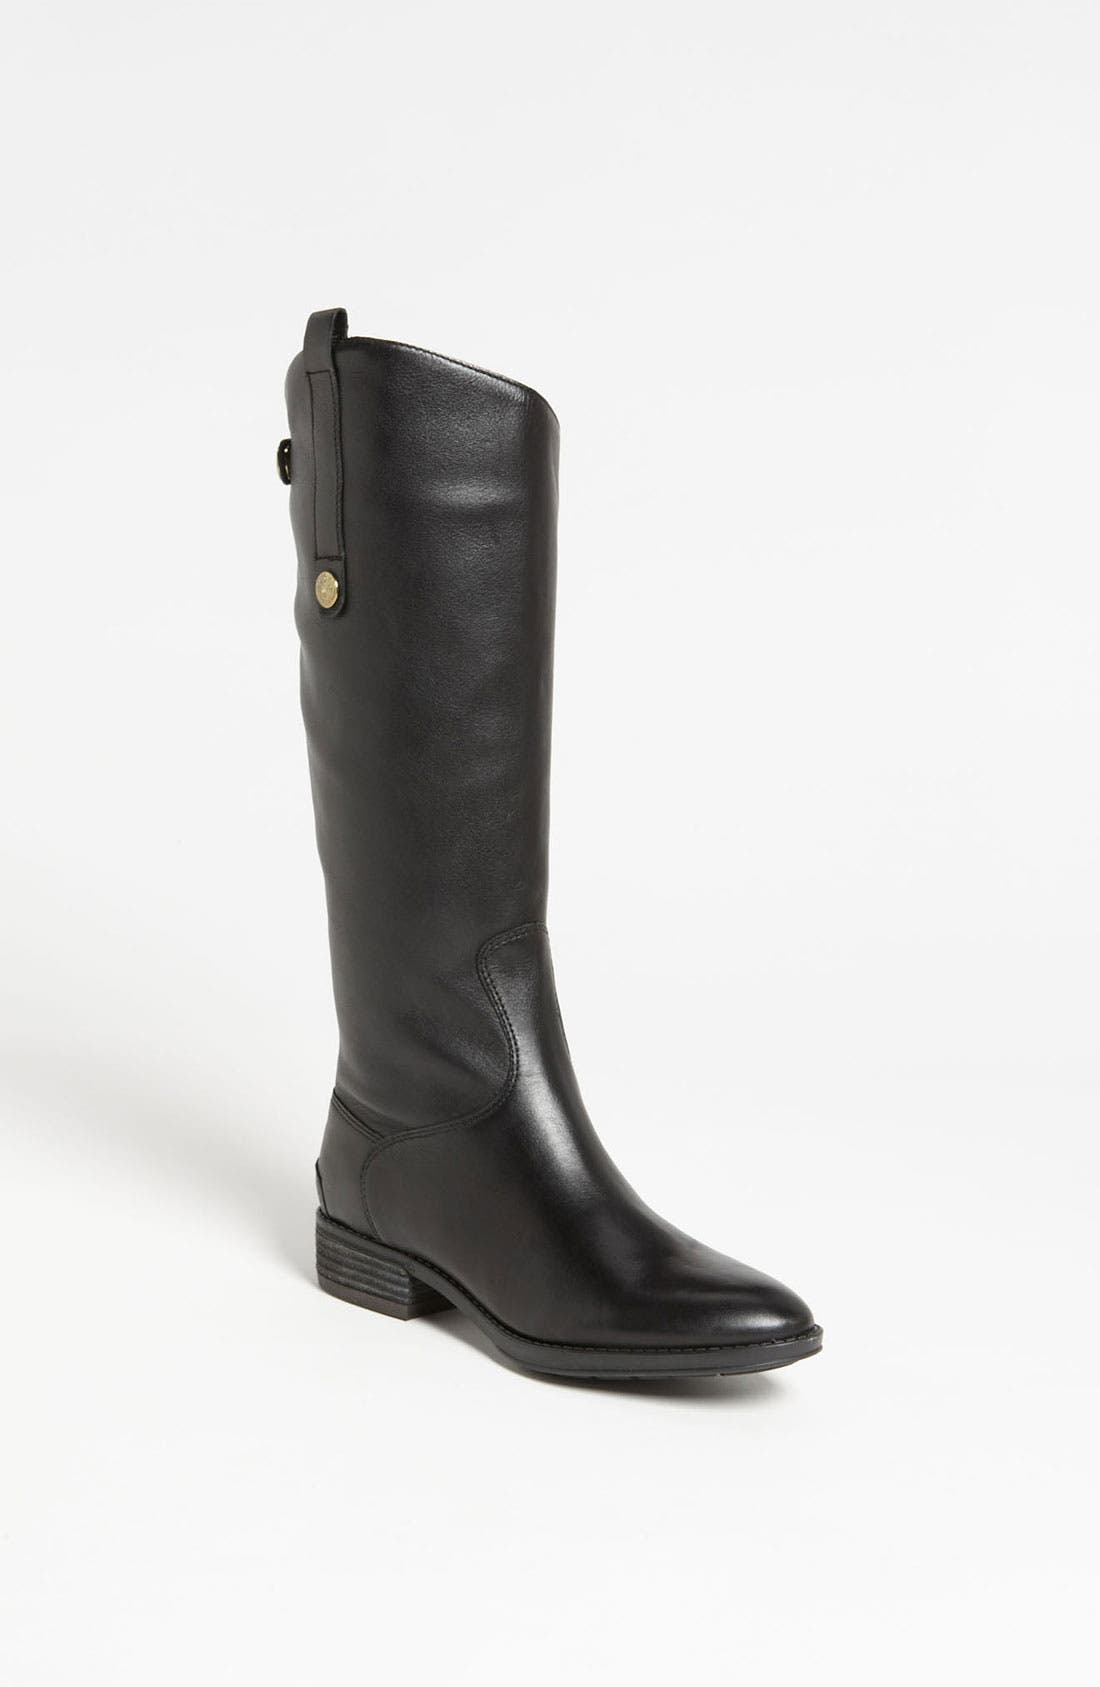 Alternate Image 1 Selected - Sam Edelman 'Penny' Boot (Women)